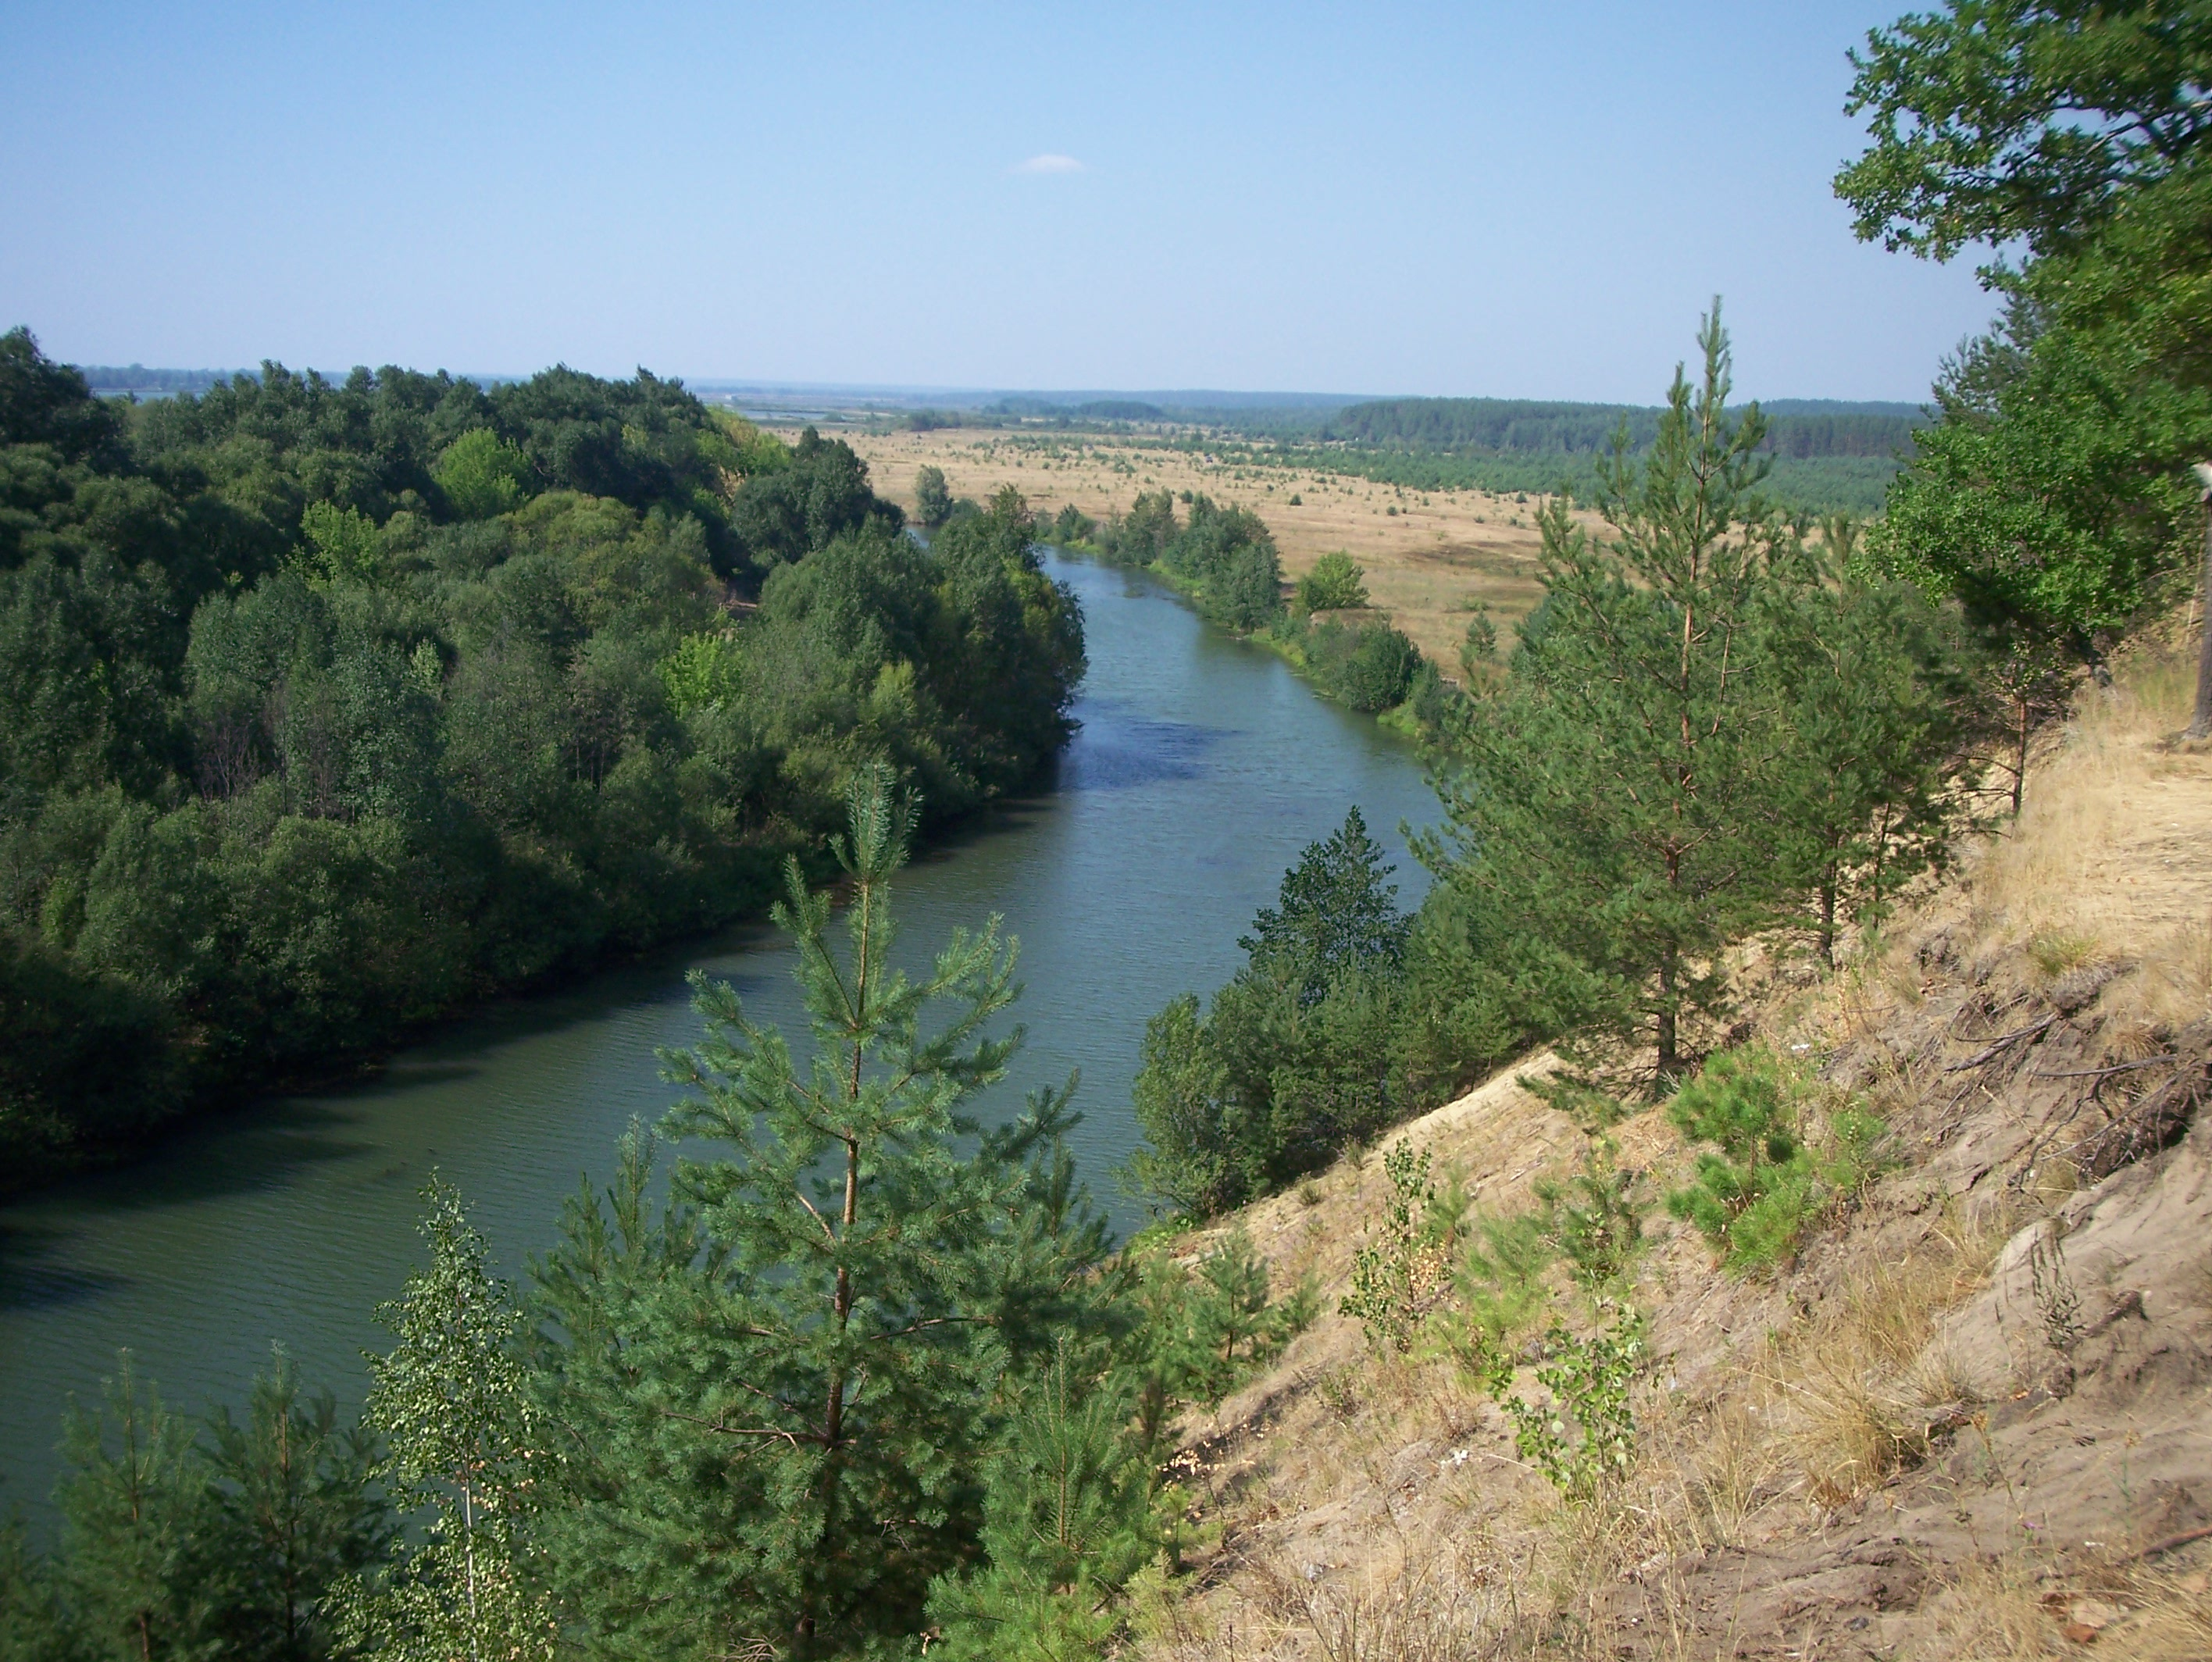 Russian country side: River view from the hill